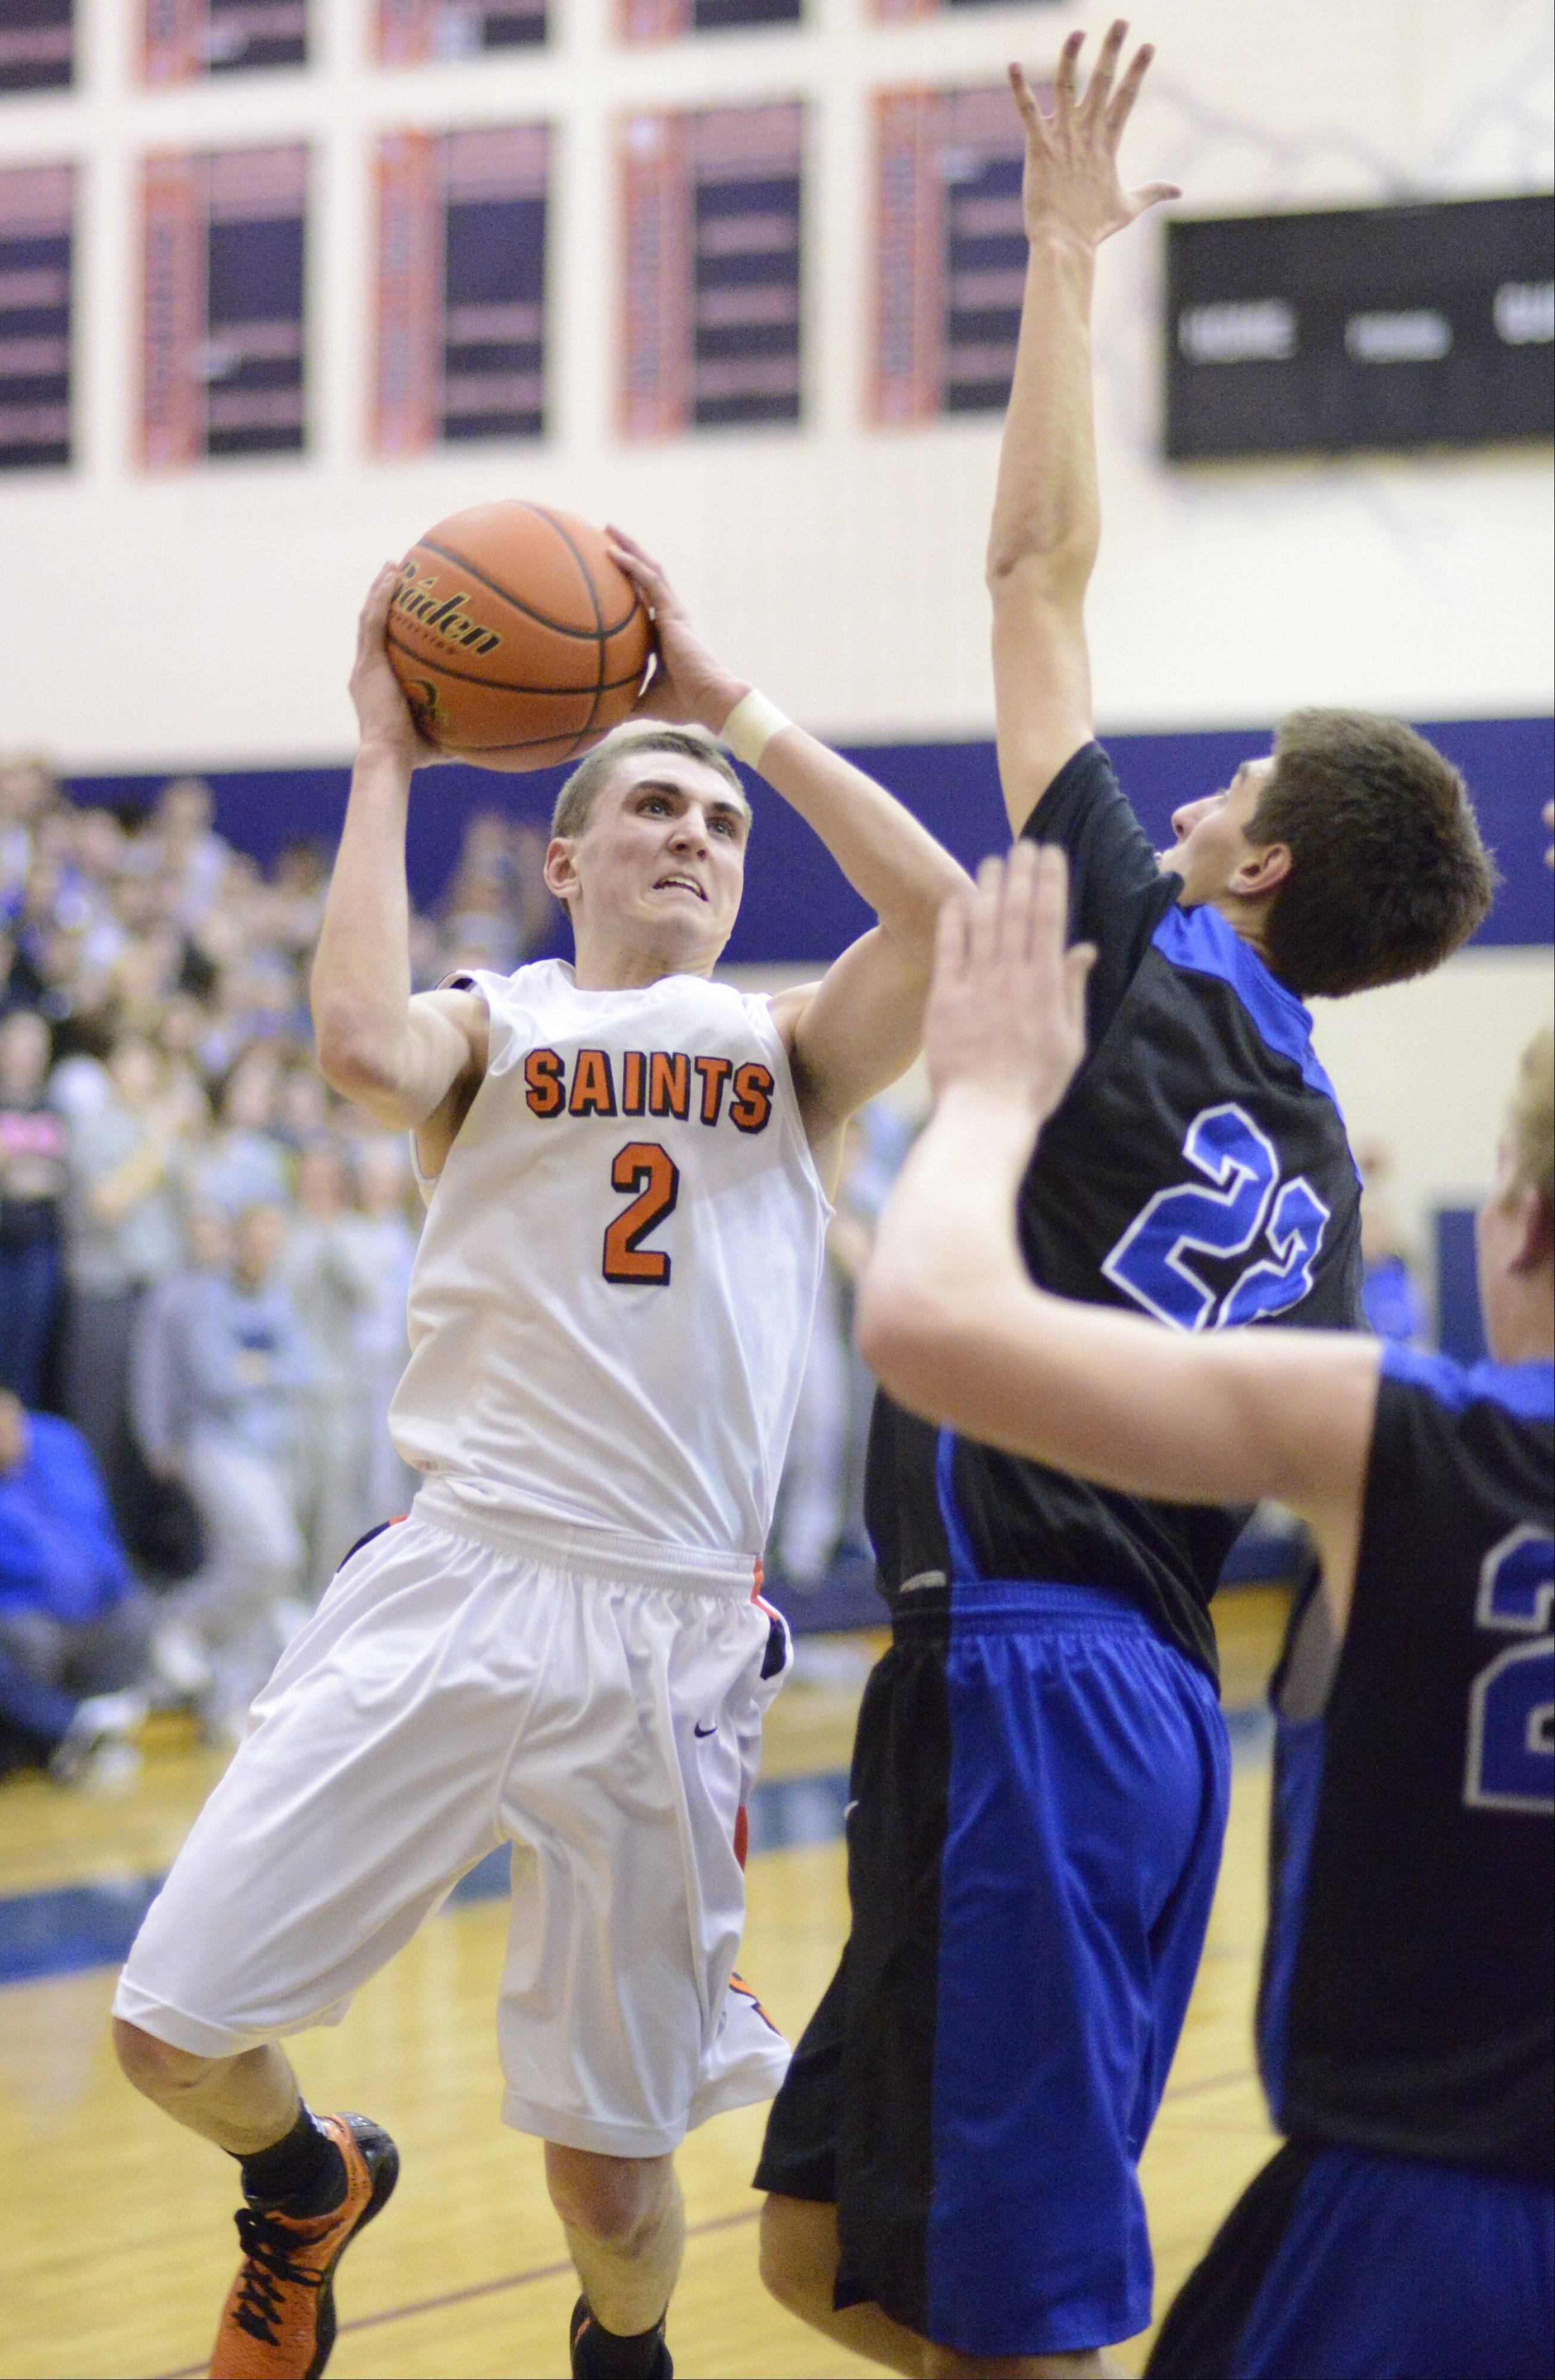 Images from the St. Charles East vs. St. Charles North Class 4A regional boys basketball game Wednesday, February 27, 2013.